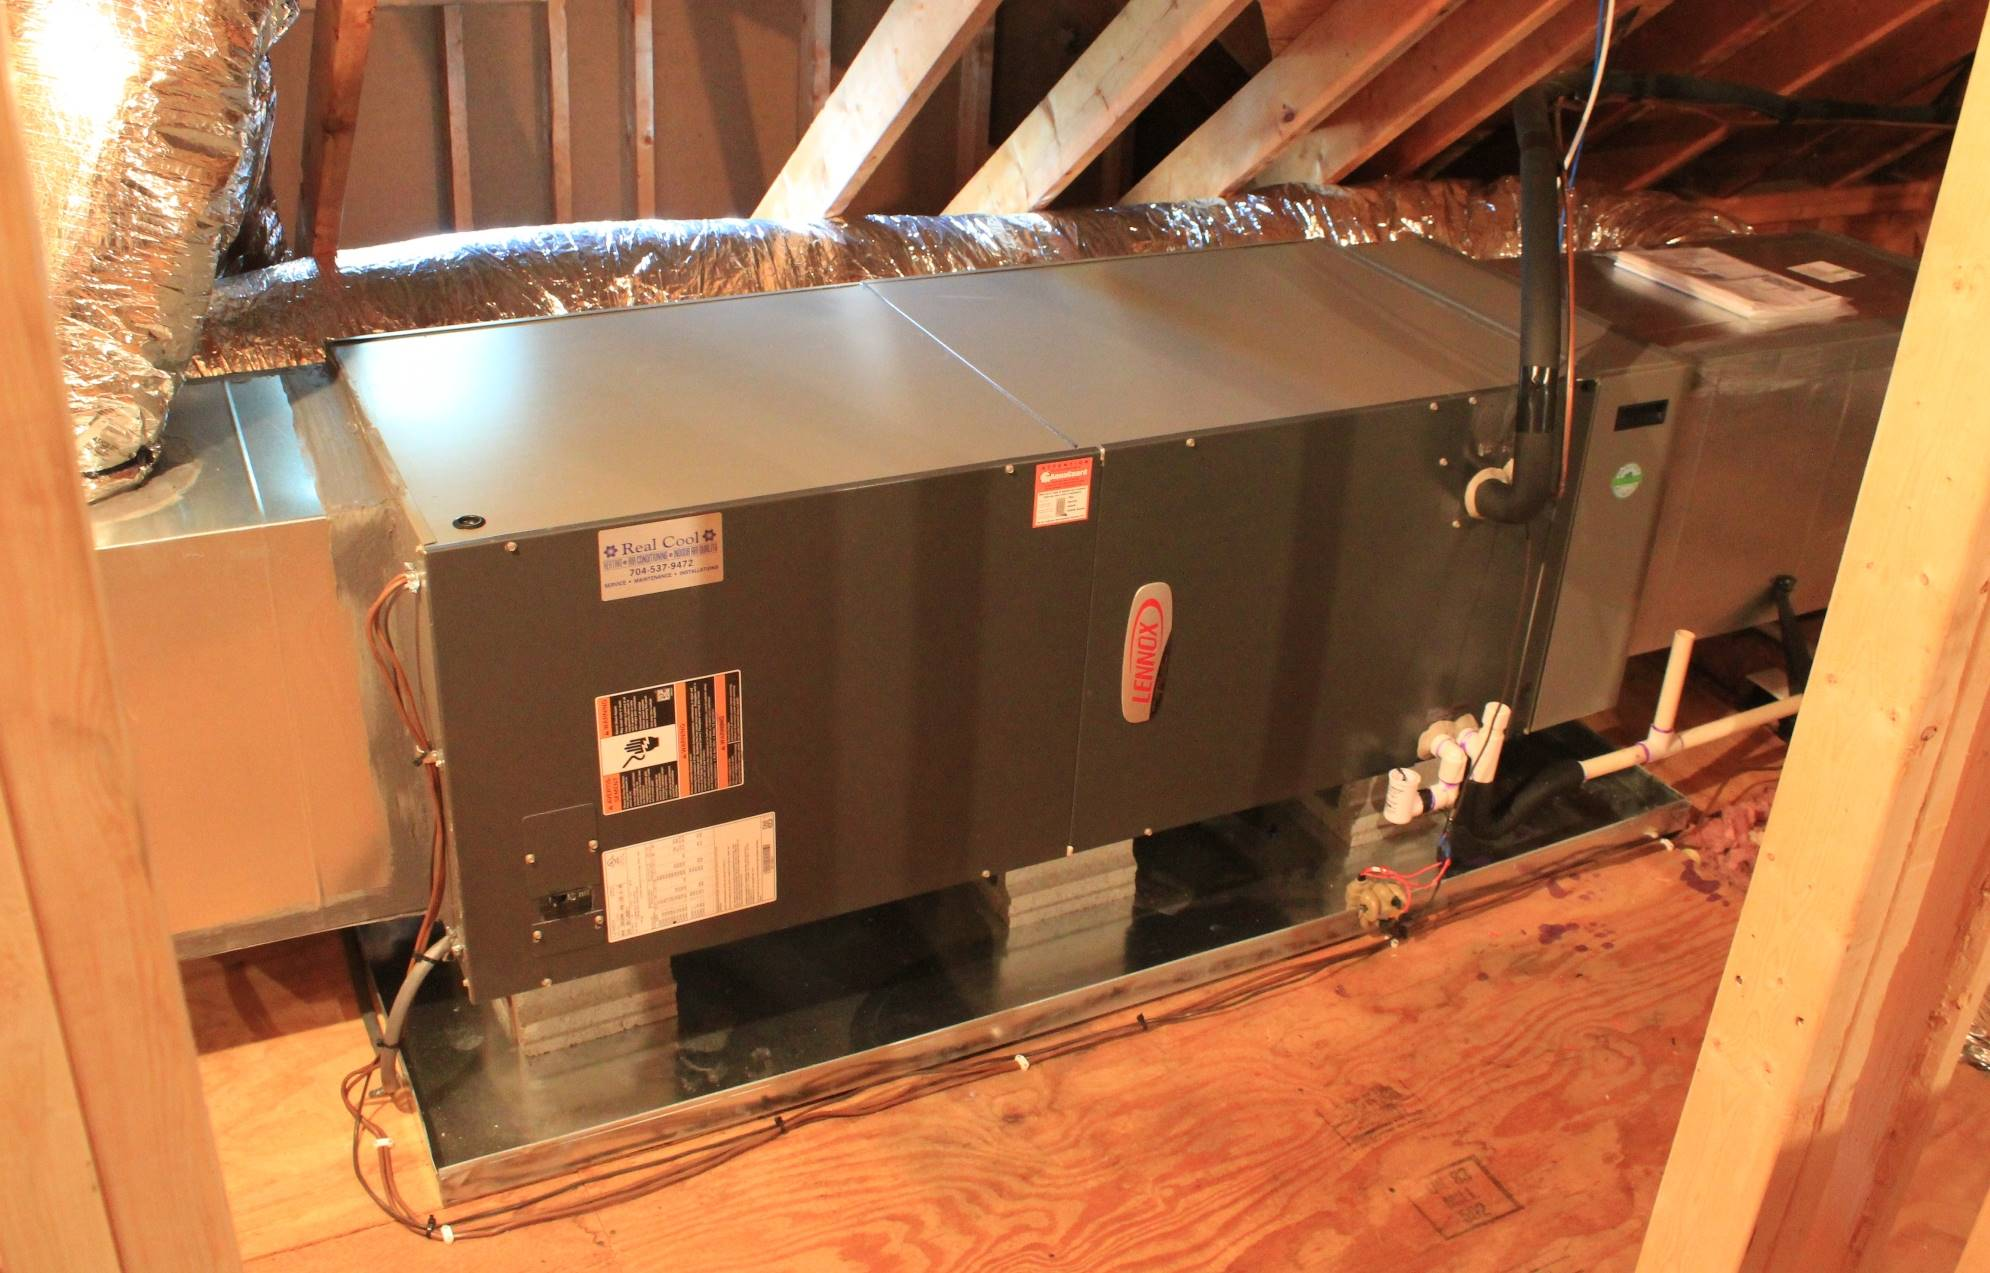 Heat Pump Installation By Real Cool - Air Handler Section